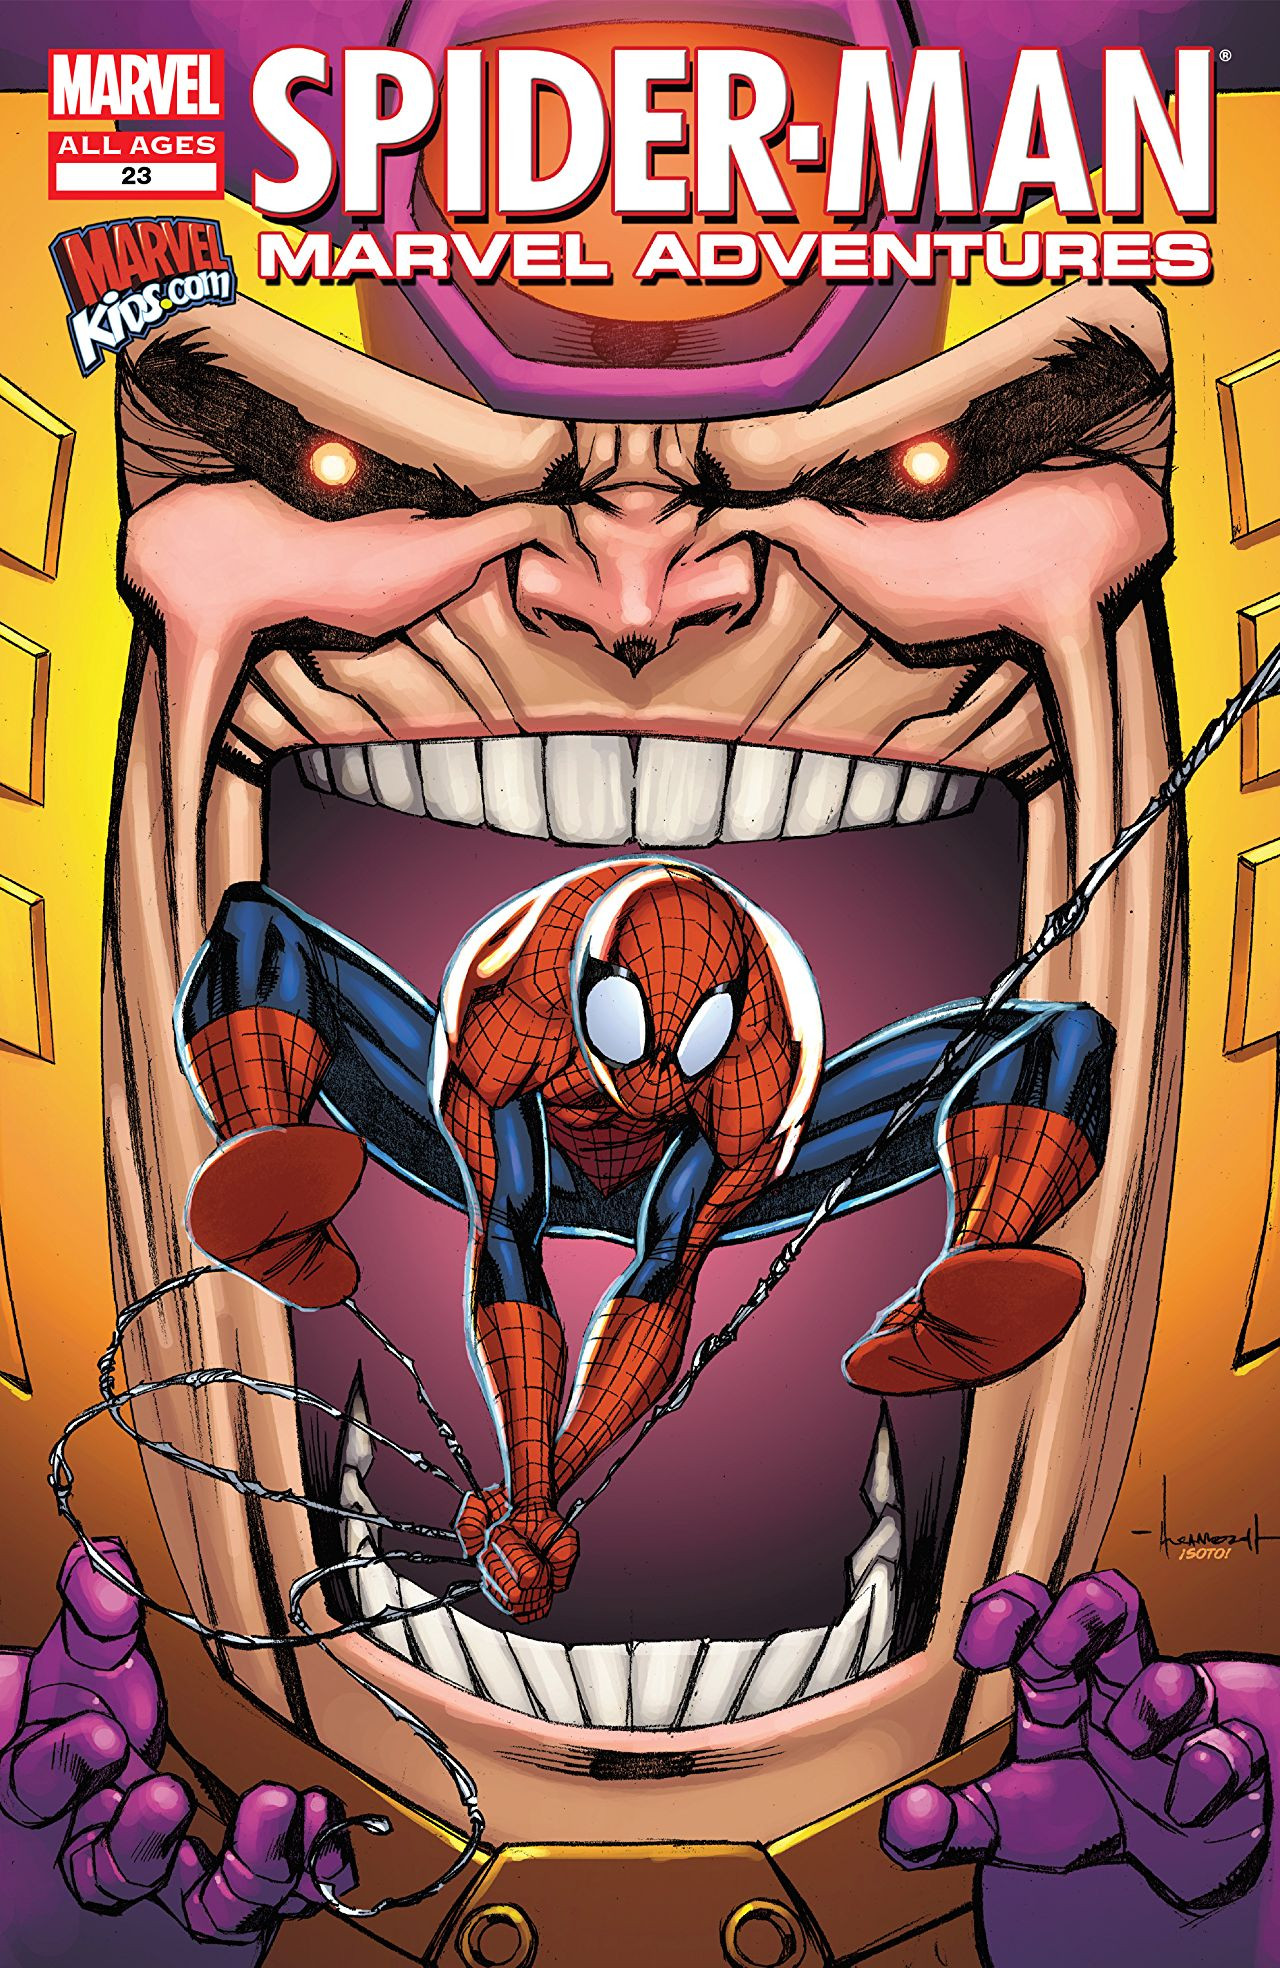 Marvel Adventures: Spider-Man Vol 2 23